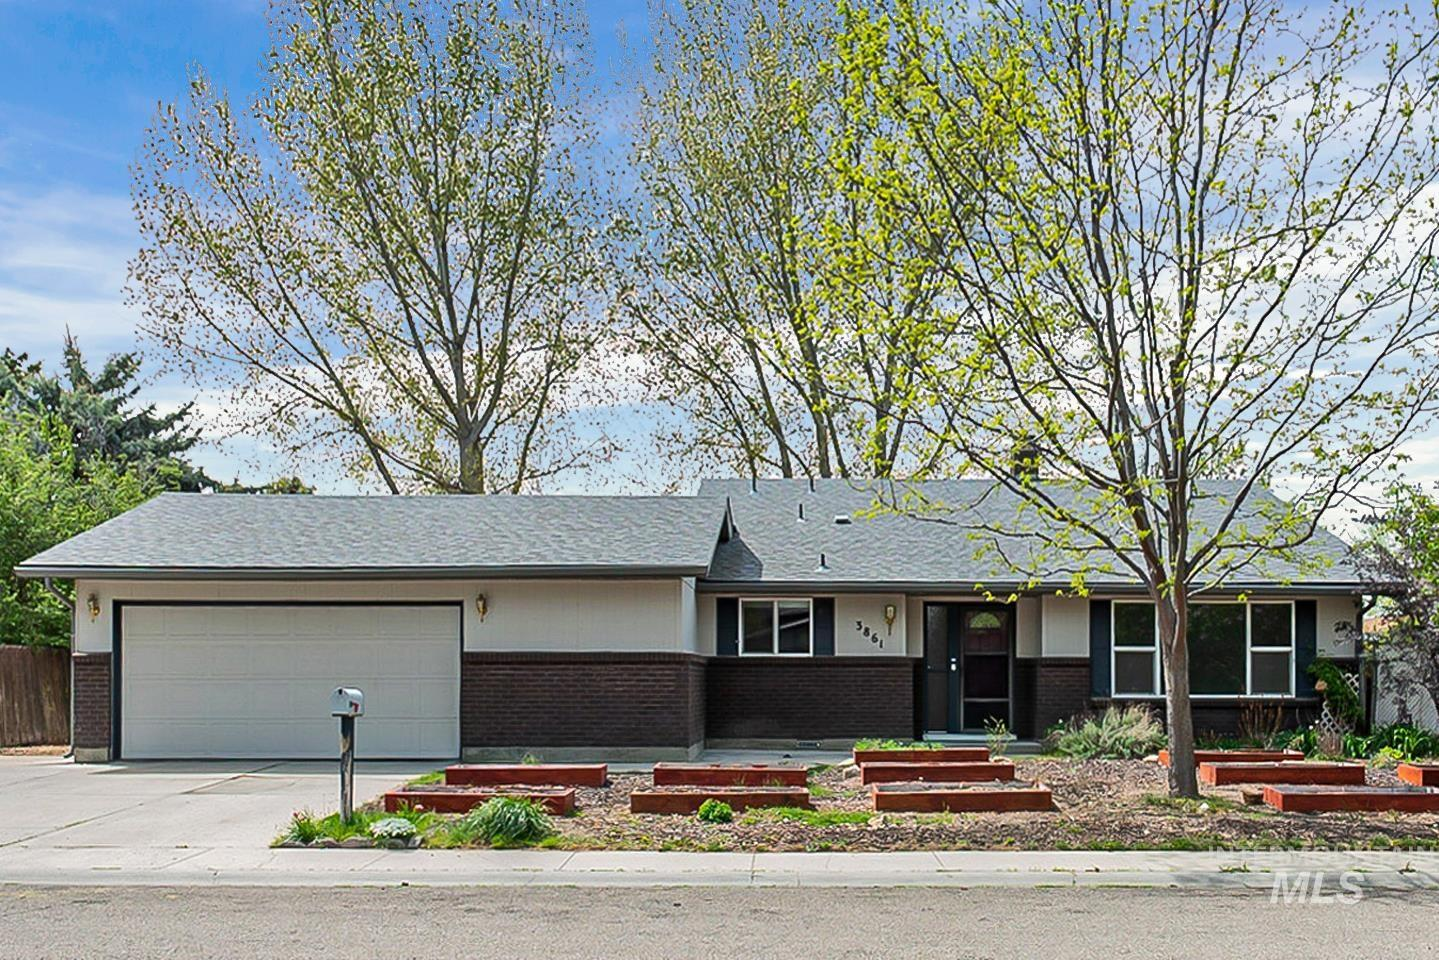 3861 N PEPPERWOOD Property Photo - Boise, ID real estate listing